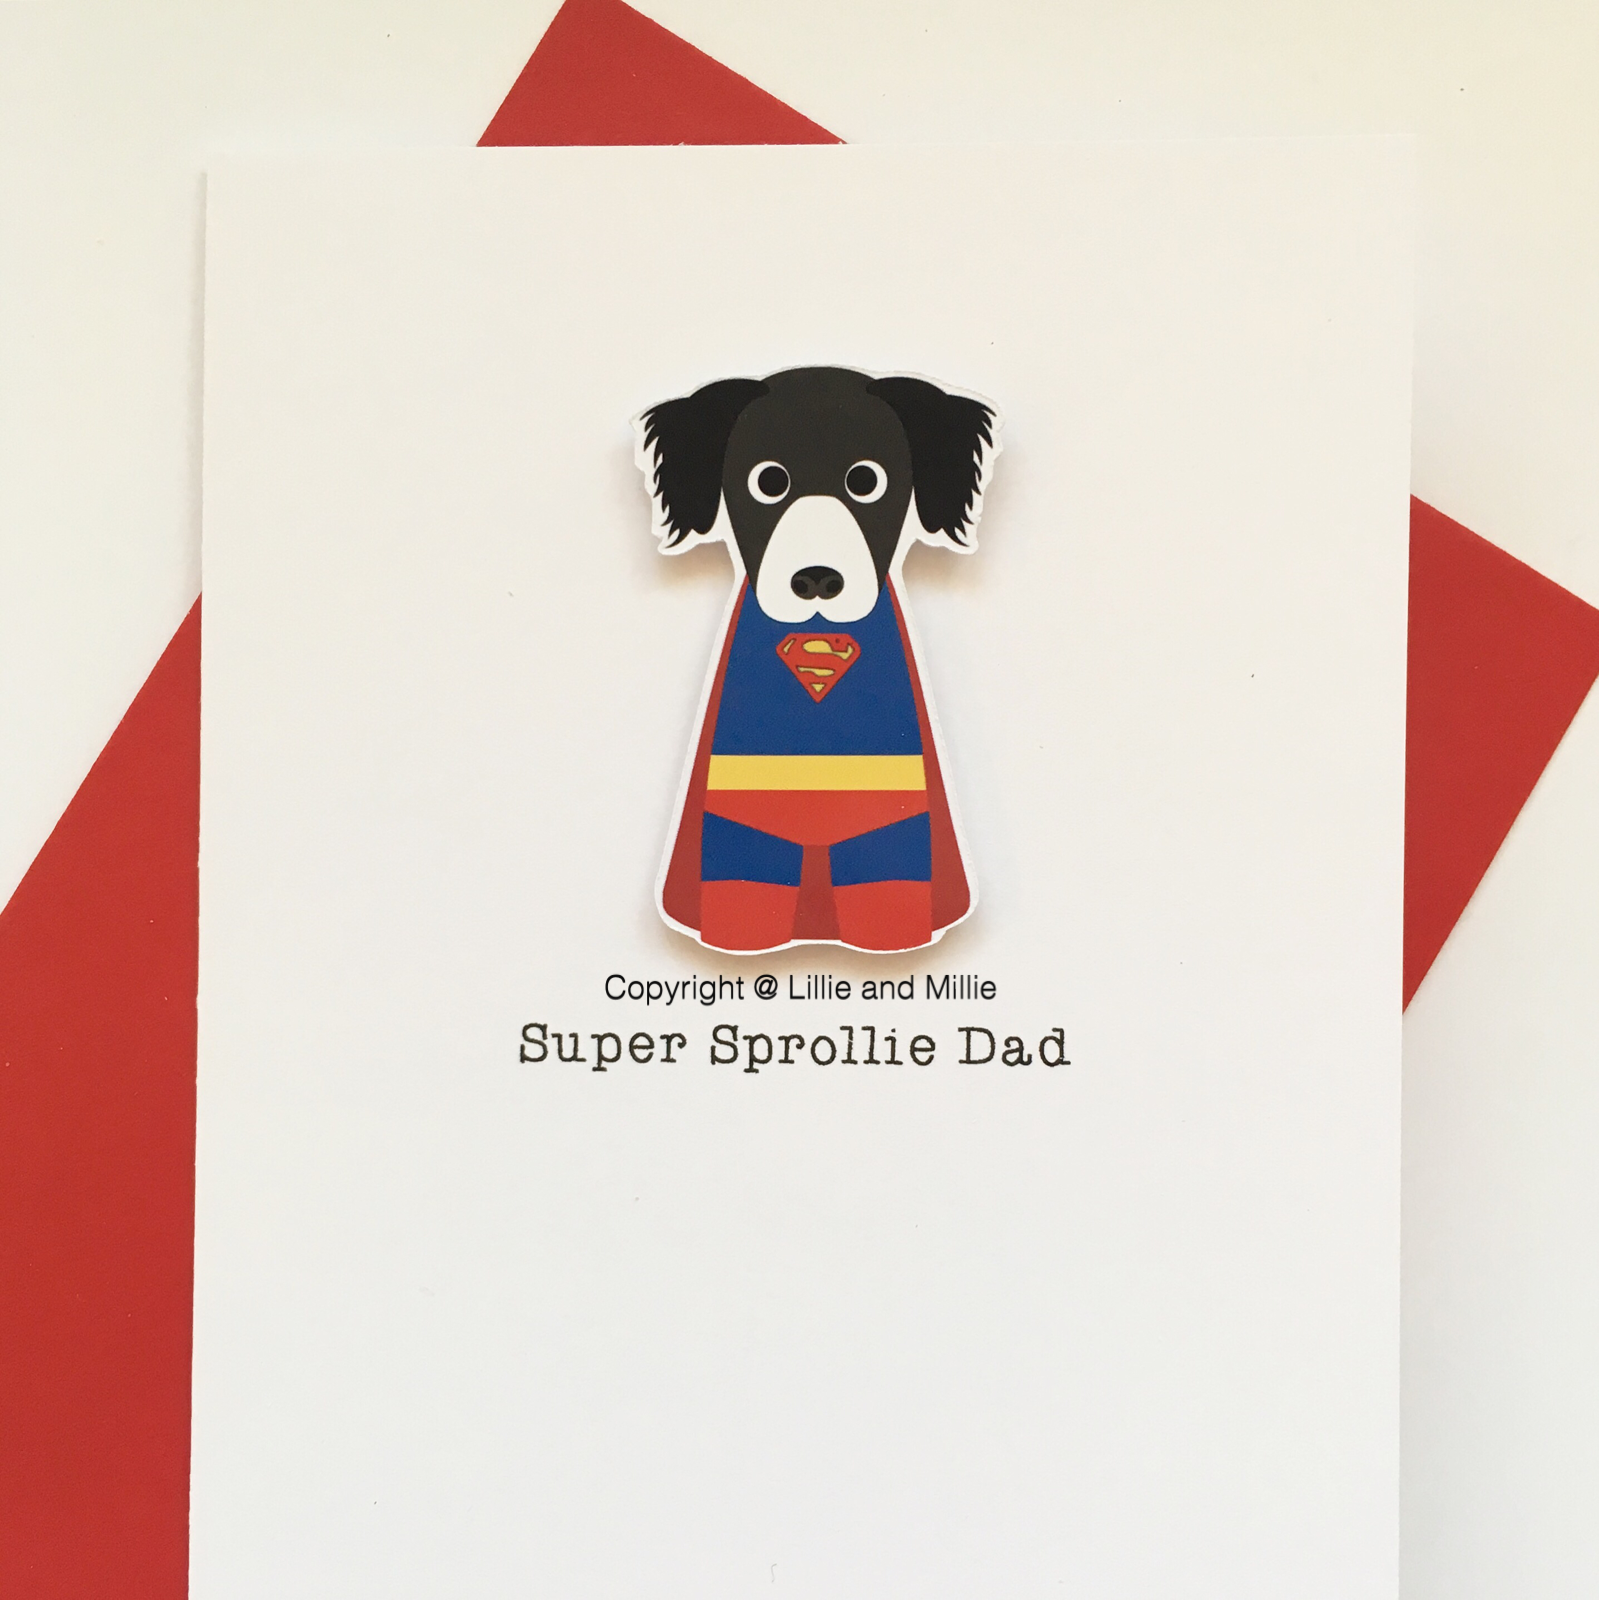 Cute and Cuddly Super Sprollie Dad Card